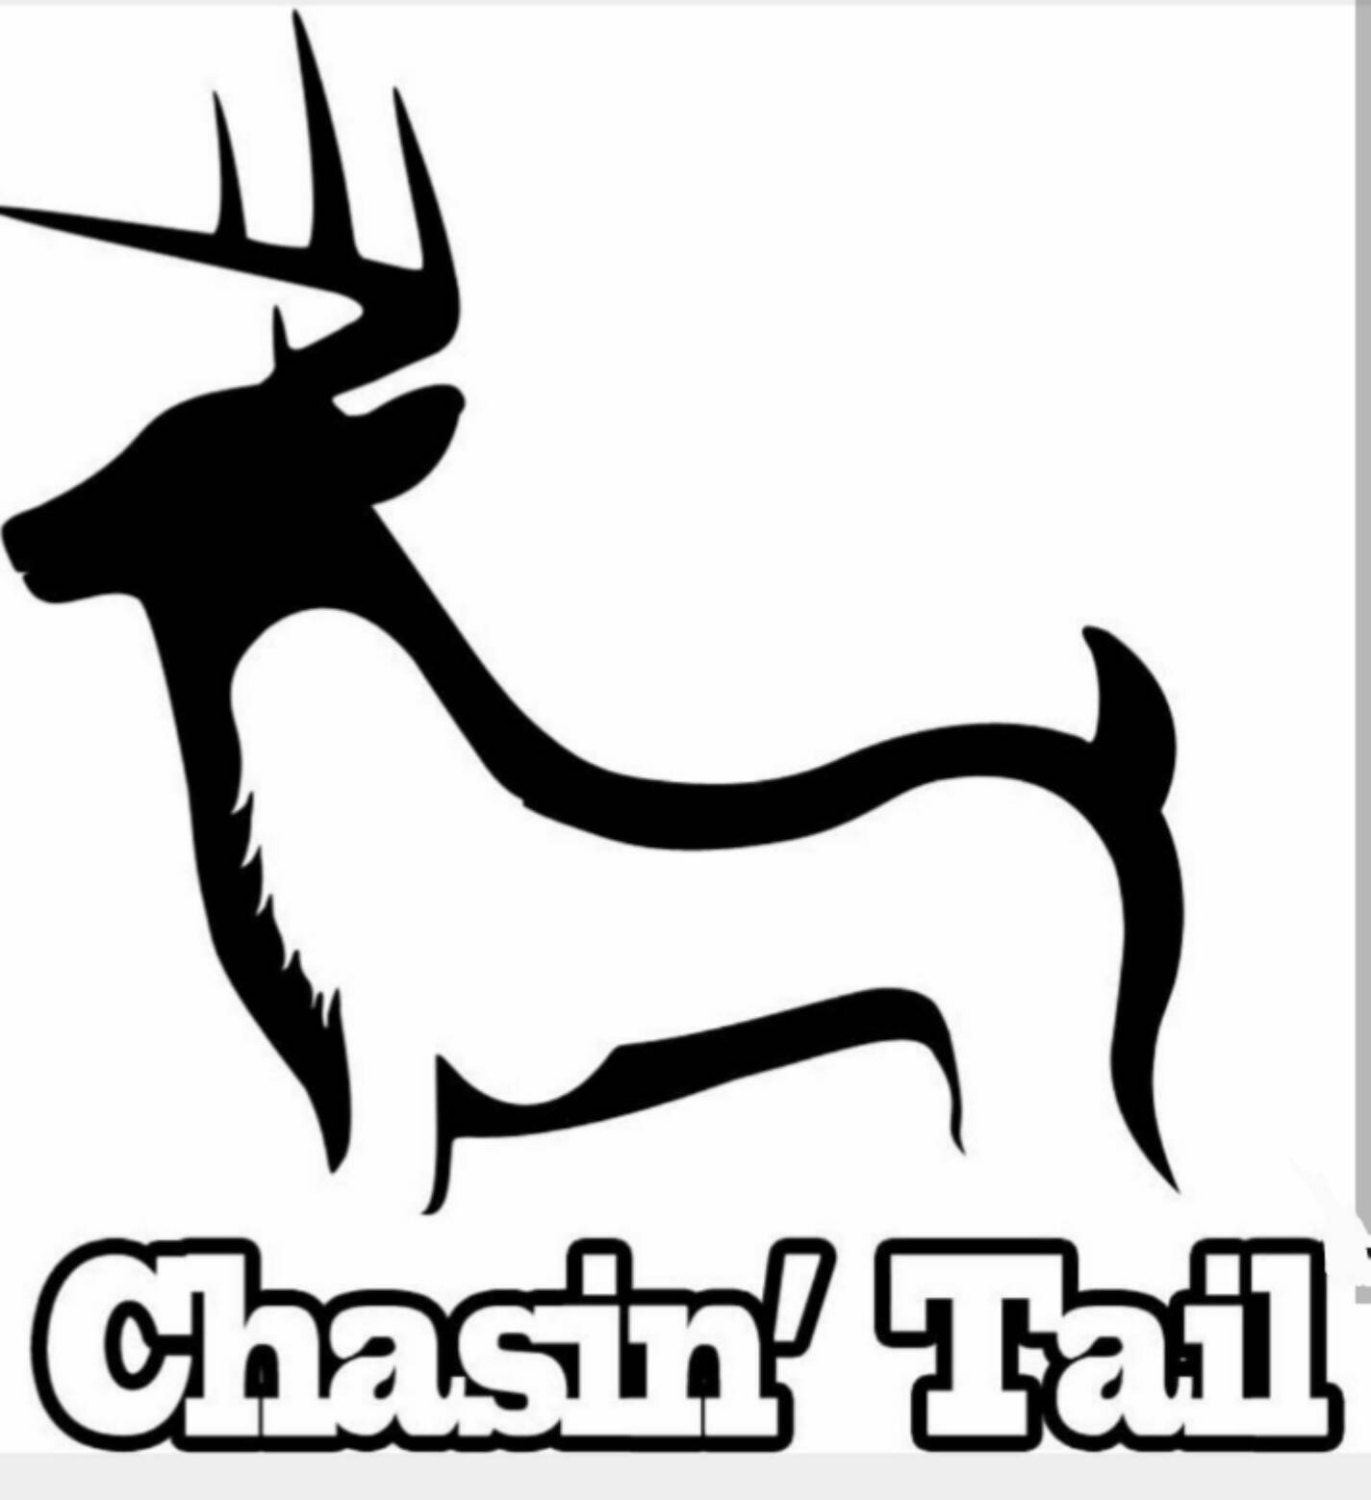 Hunting and fishing chasin 39 tail decal 6x6 by hannahsvinyl for Hunting and fishing decals